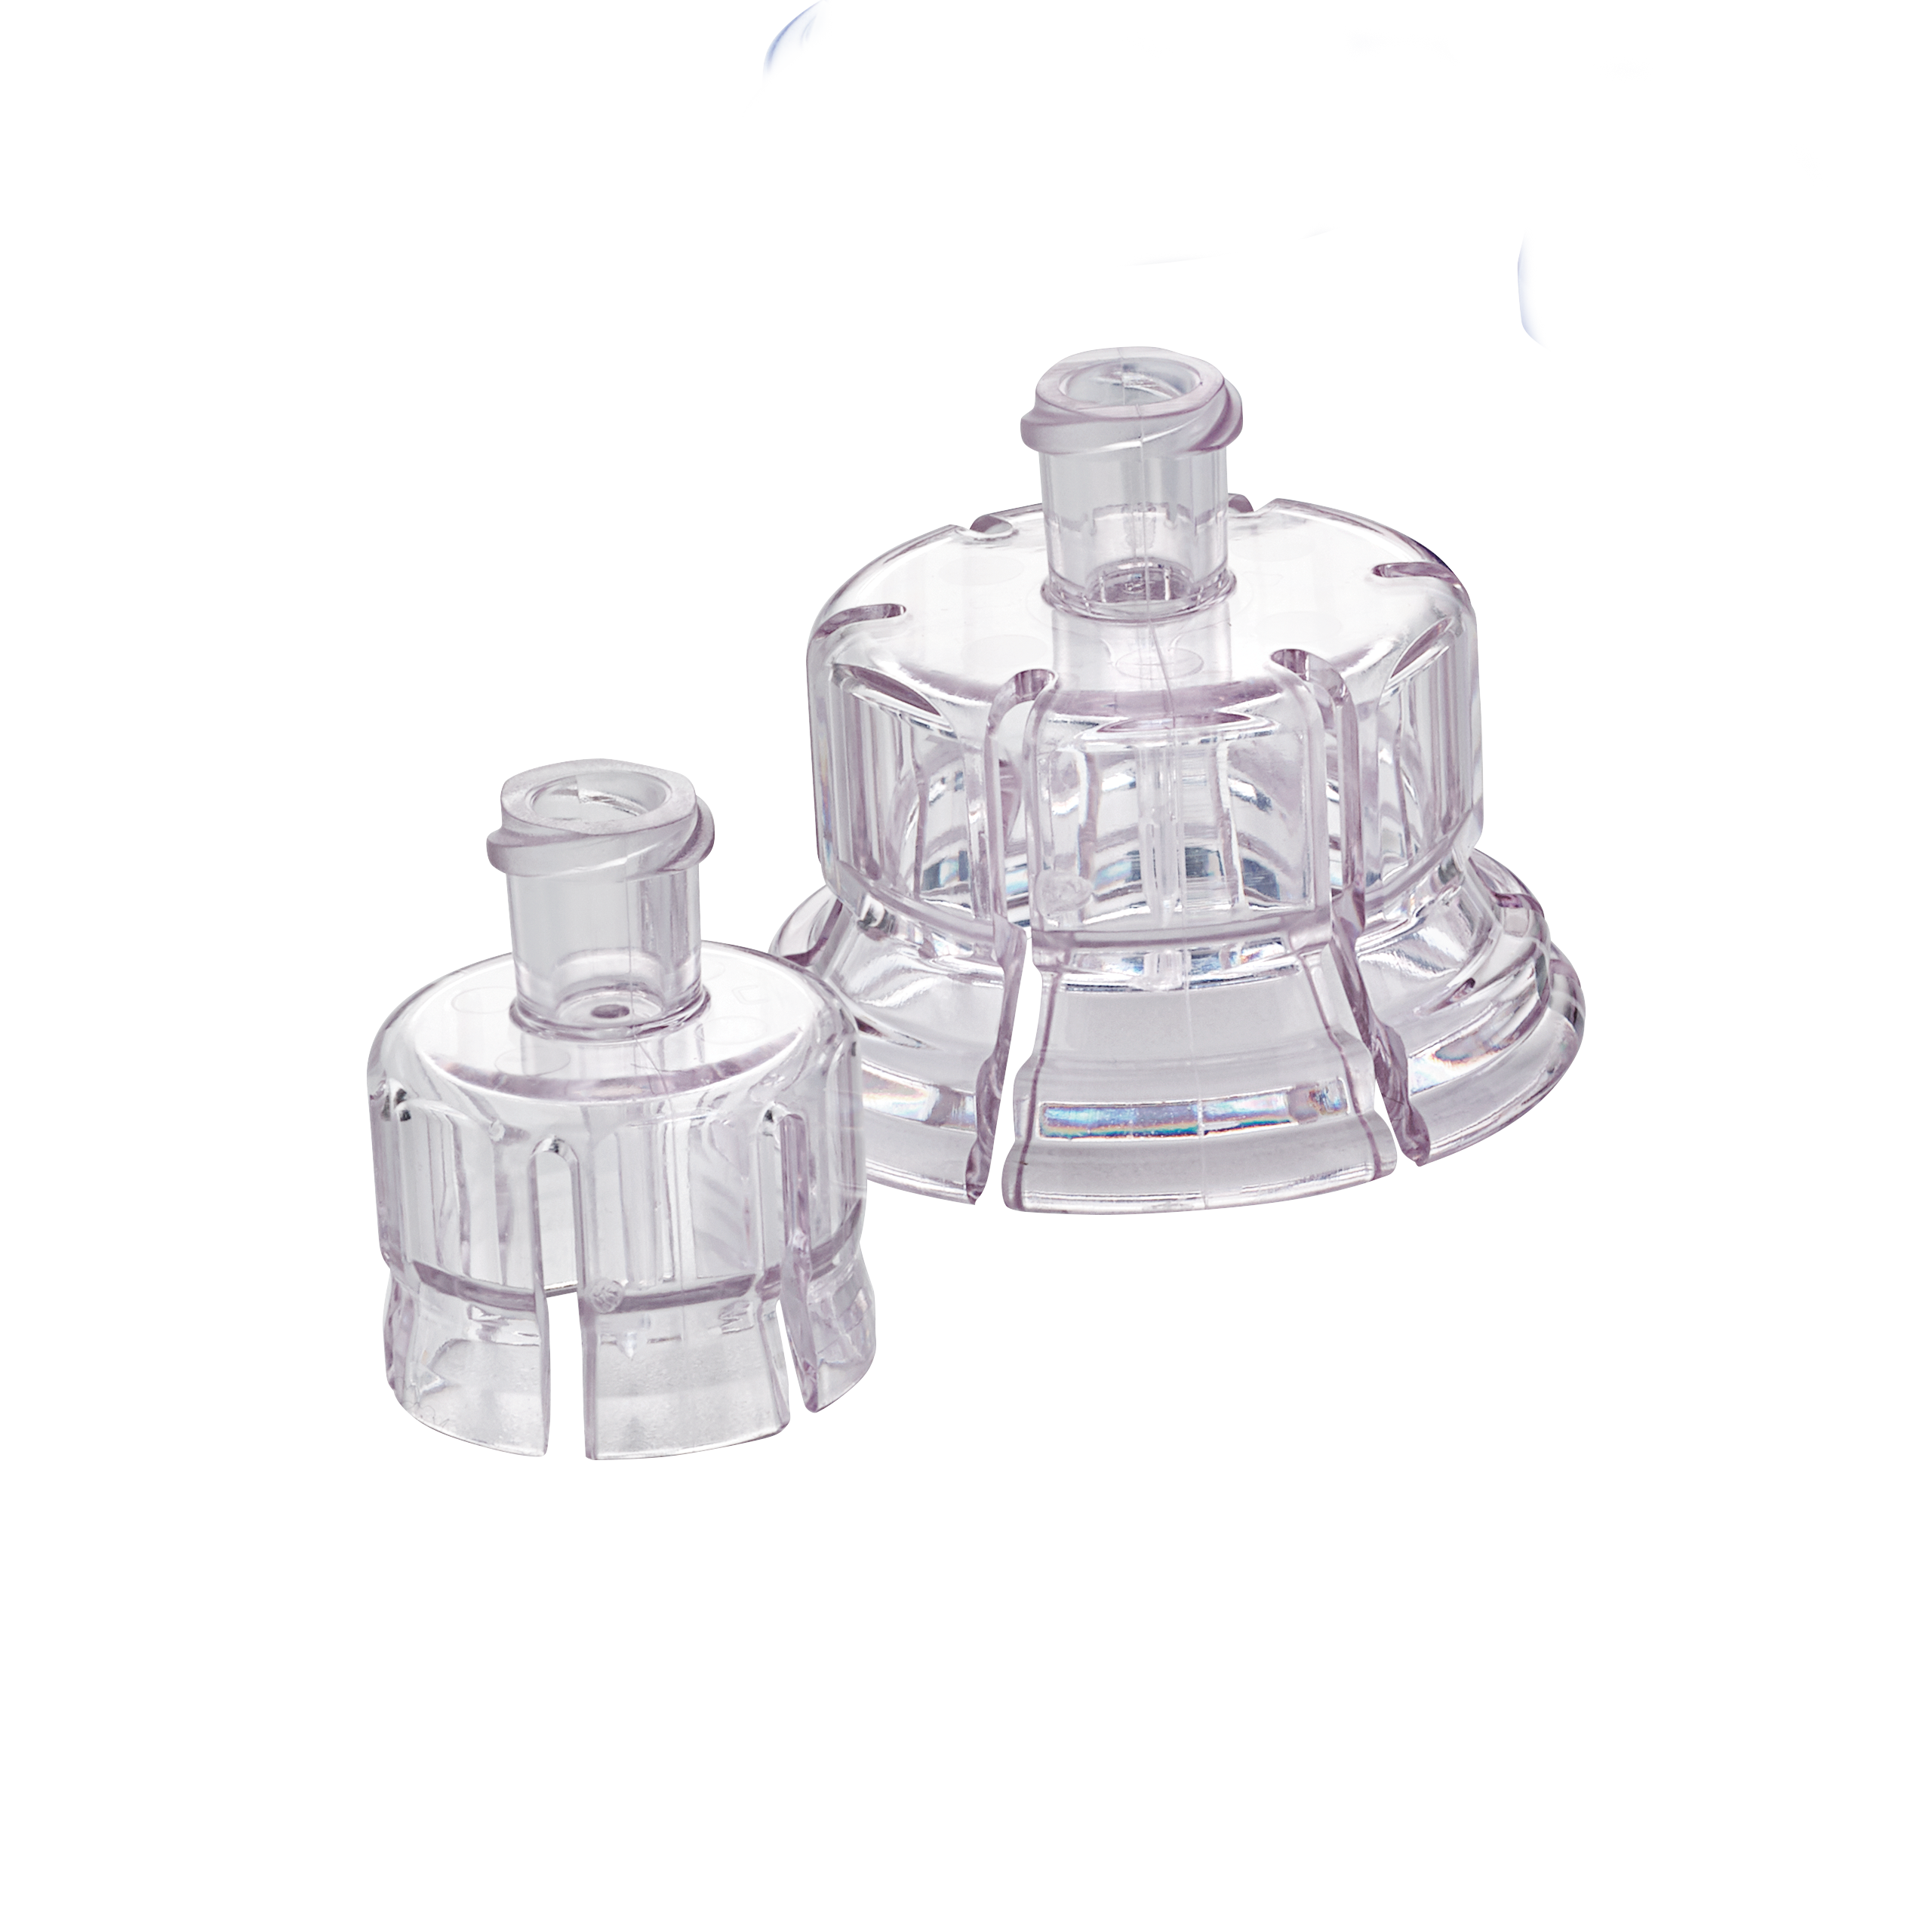 West's 20mm and 13mm vial adapters